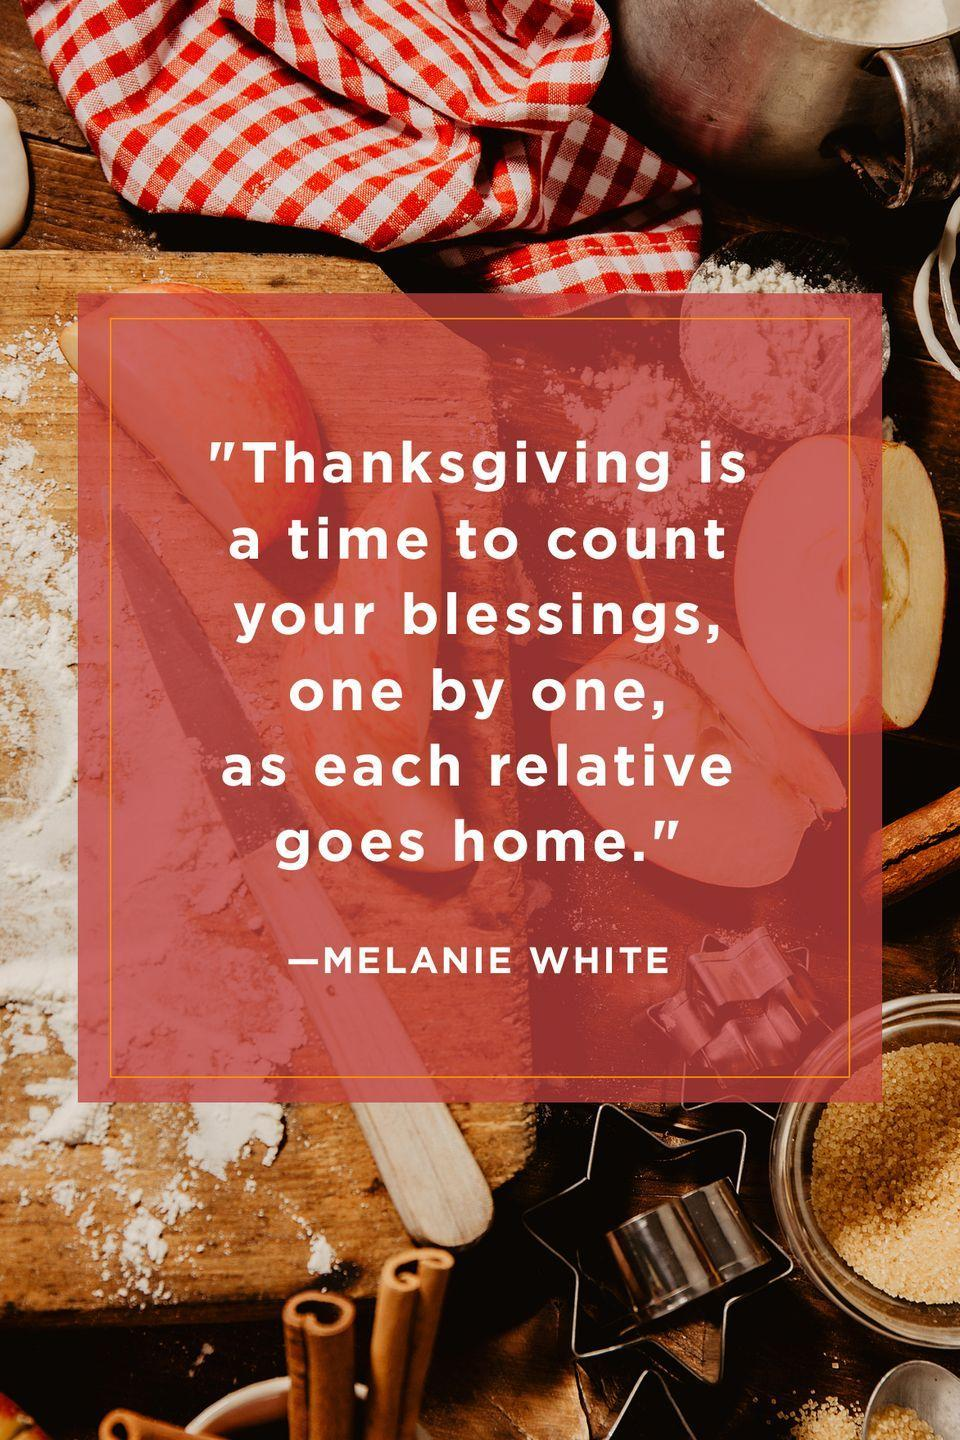 "<p>""Thanksgiving is a time to count your blessings, one by one, as each relative goes home.""</p>"